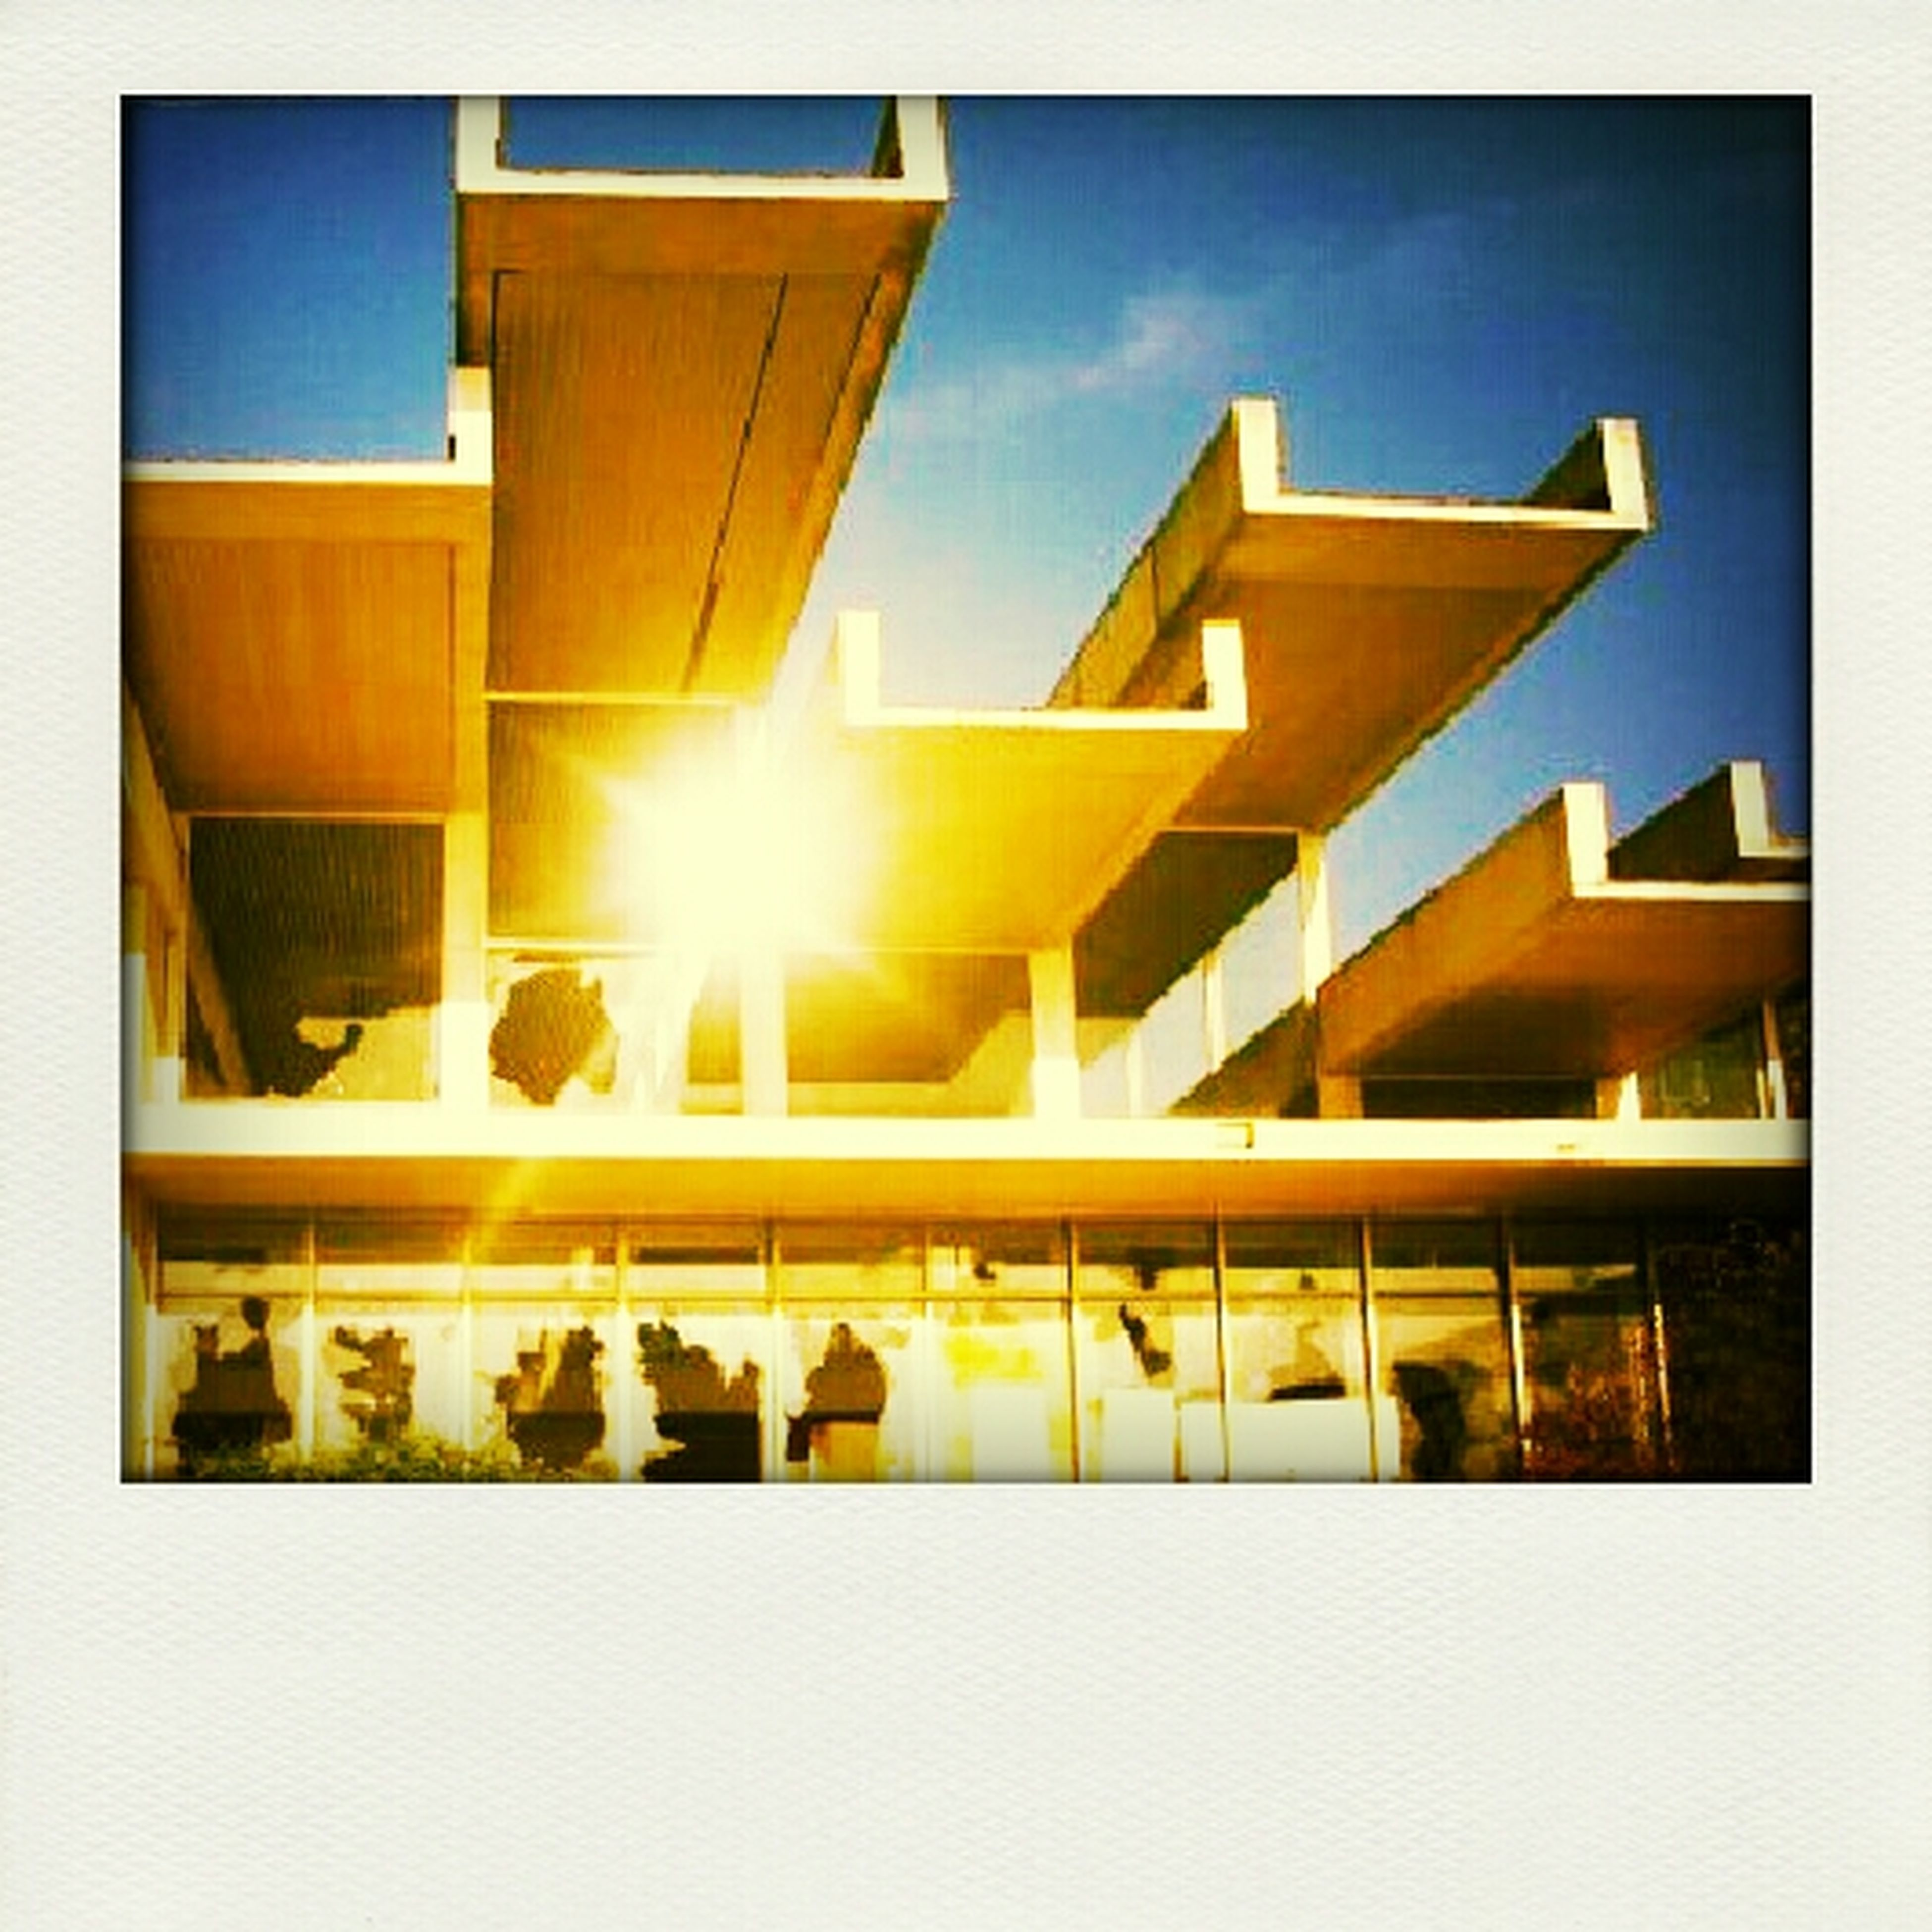 transfer print, auto post production filter, architecture, built structure, building exterior, sunlight, in a row, sky, reflection, low angle view, arrangement, window, blue, side by side, large group of objects, day, no people, repetition, building, balcony